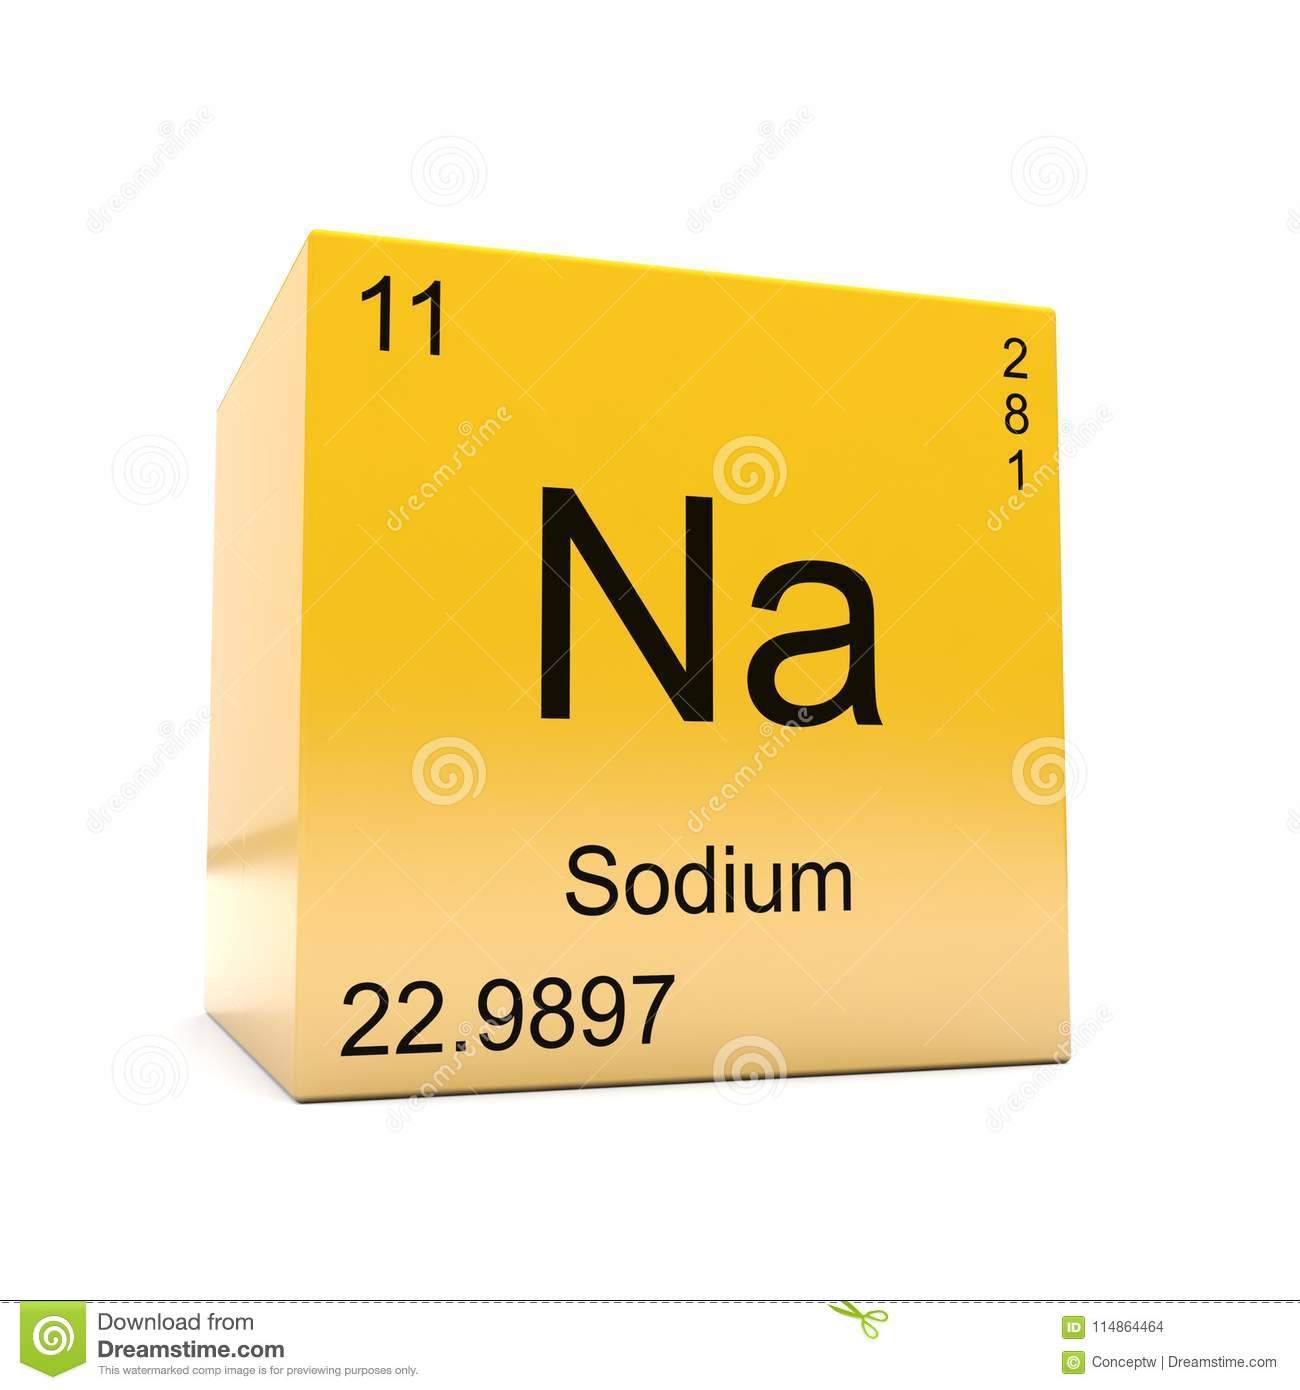 Sodium chemical element symbol from periodic table stock sodium chemical element symbol from periodic table urtaz Image collections